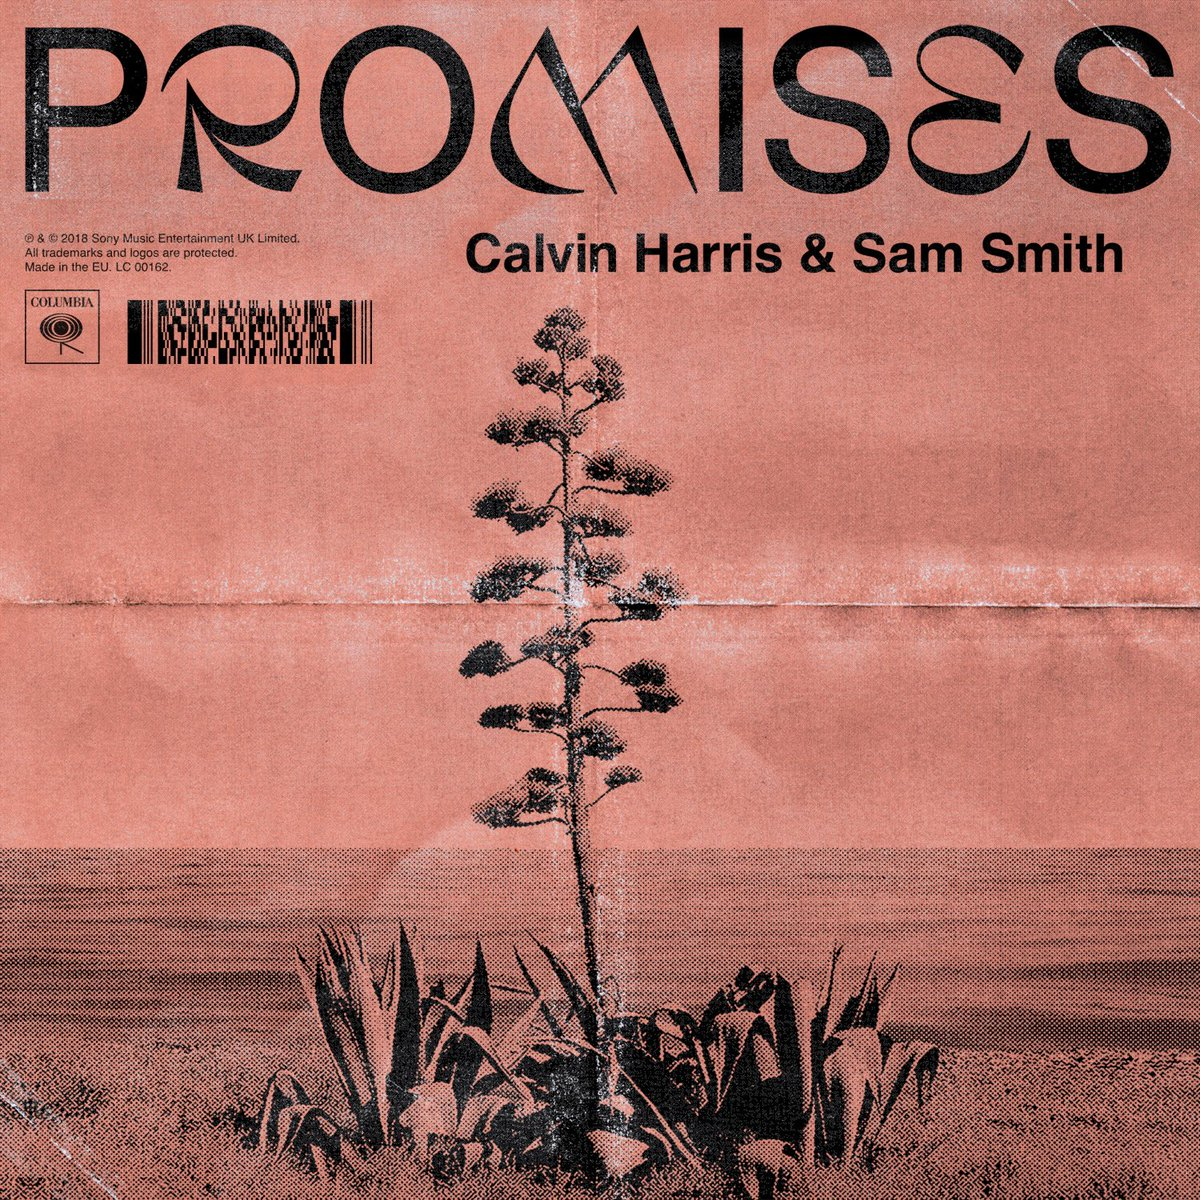 MÚSICA: Sam Smith e Calvin Harris anunciam online novo single